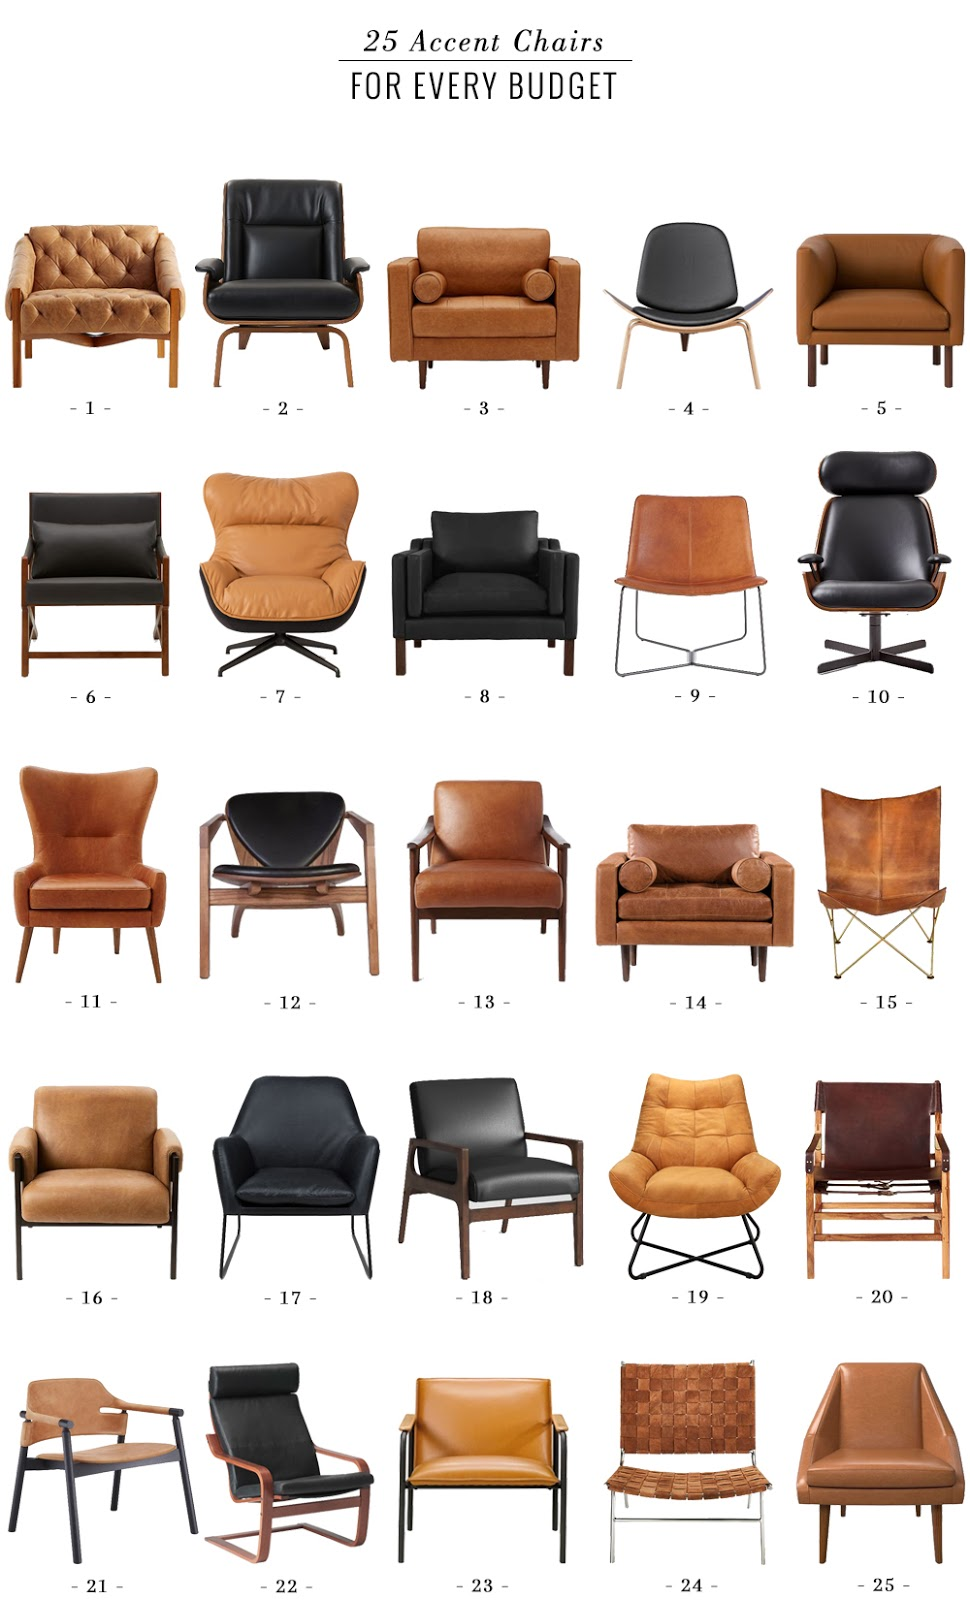 Decor & Interiors: 25 Accent Chairs for All Tastes and Budgets